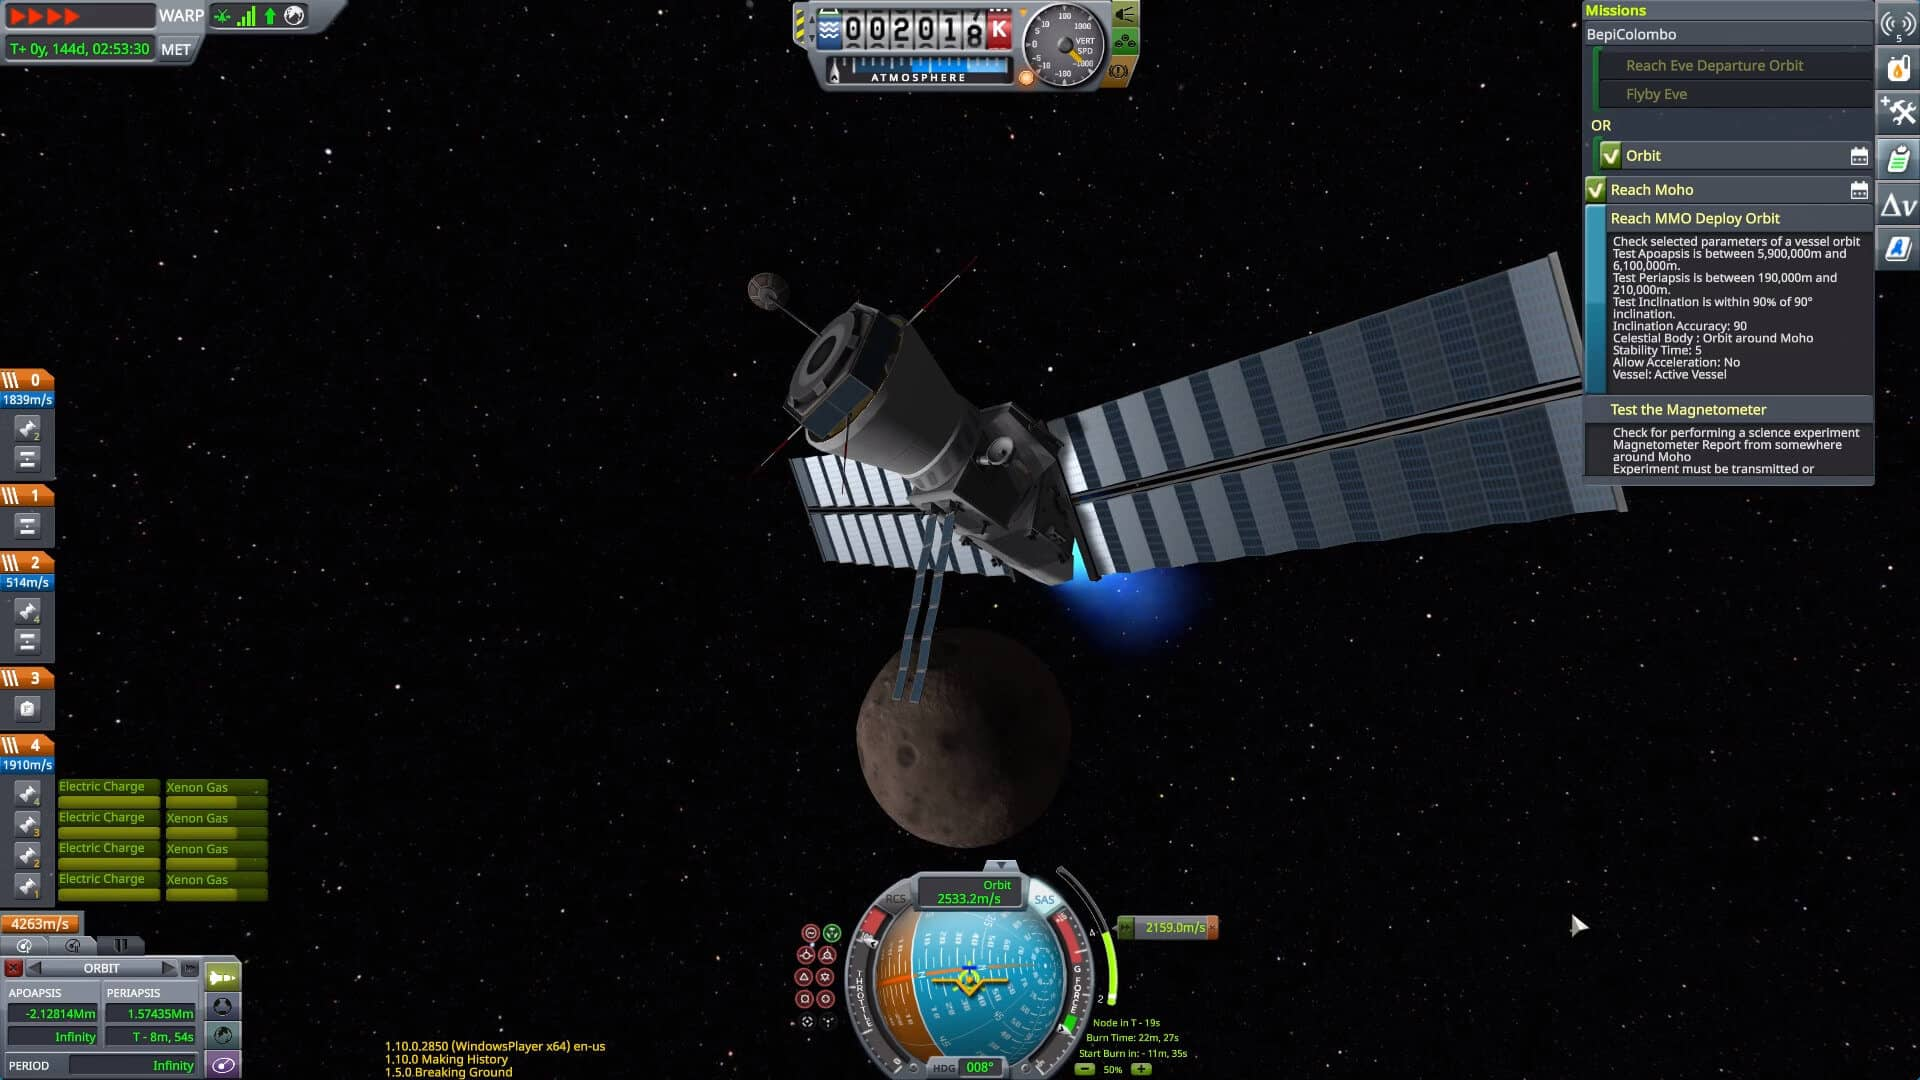 shared horizons update releases for kerbal space program screenshot